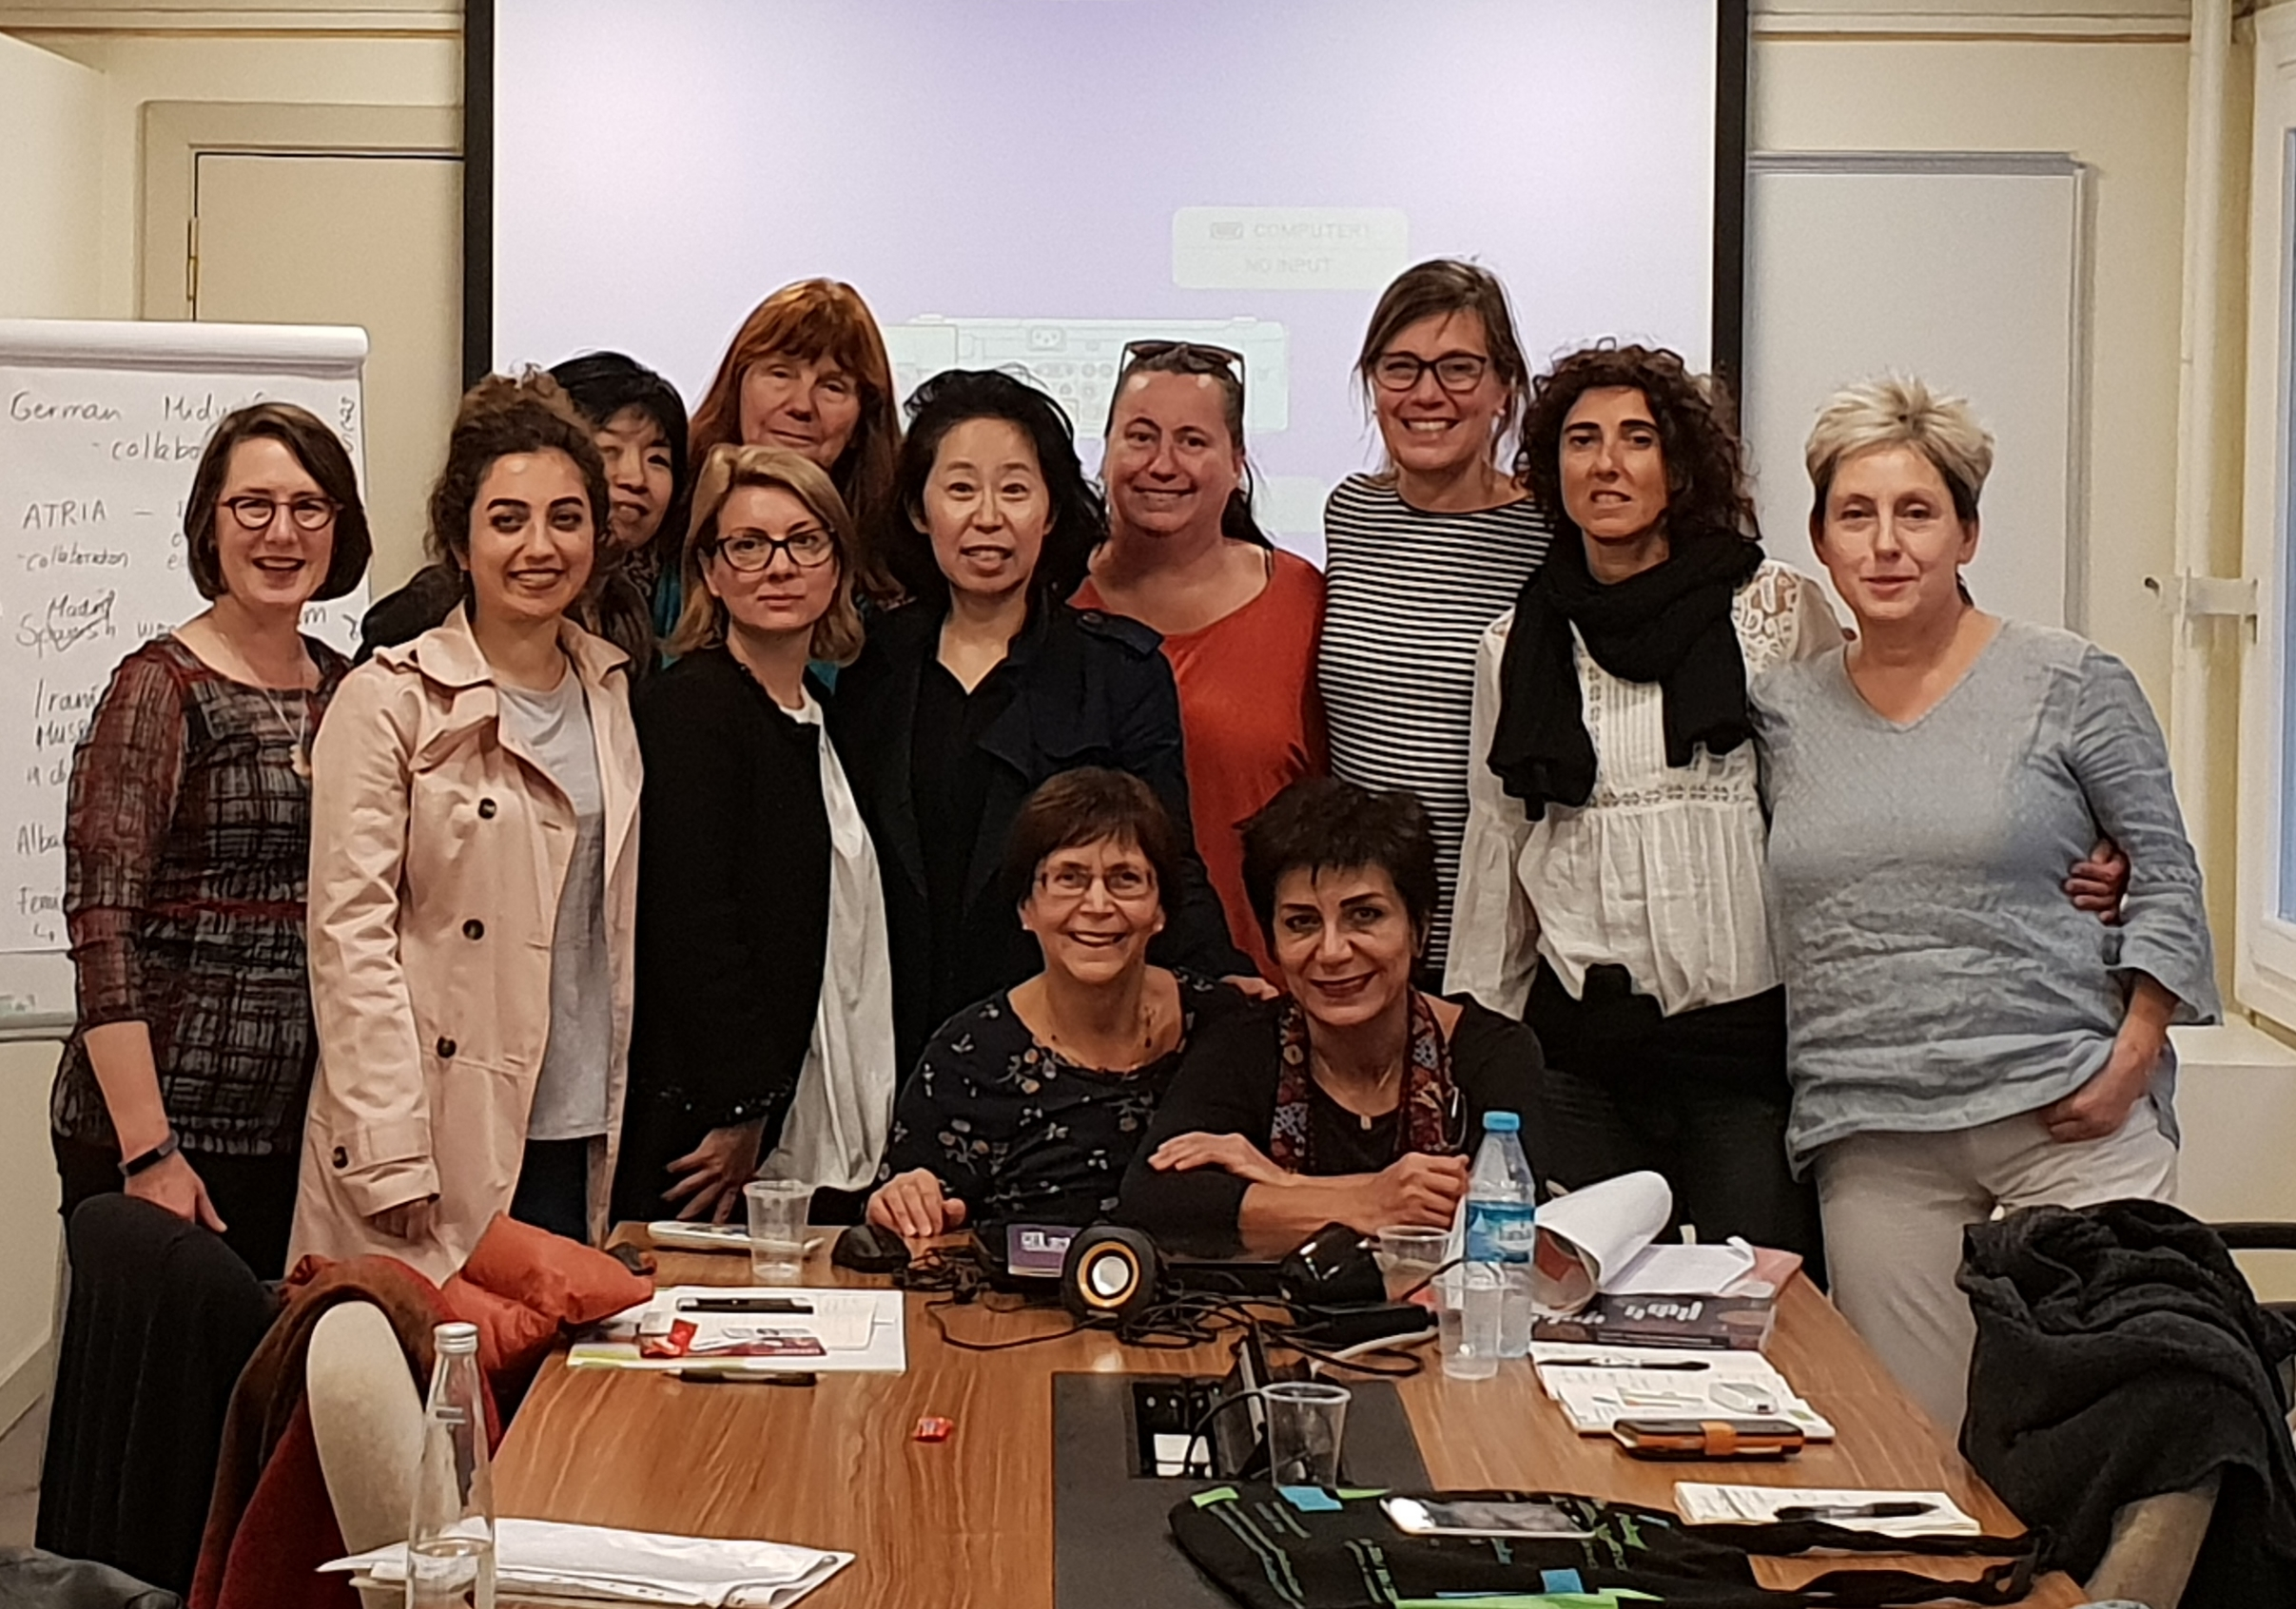 Group of women gather during a workshop